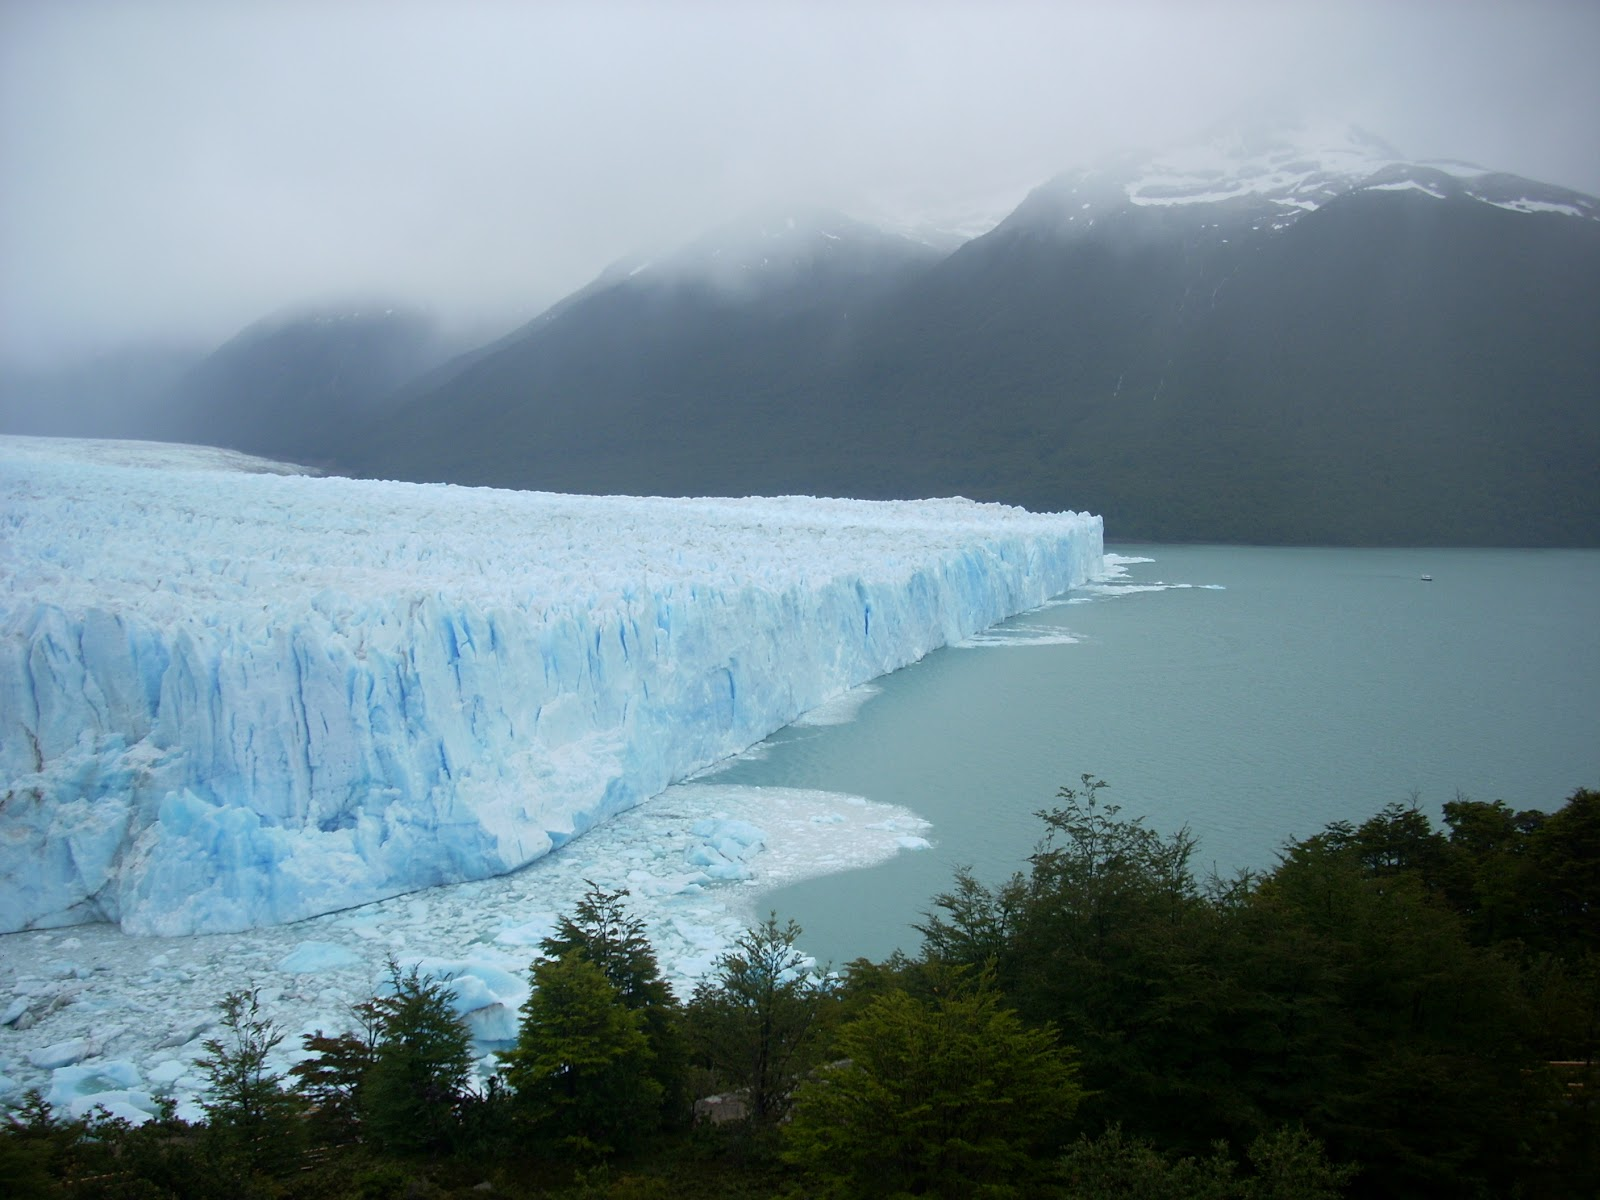 Perito Moreno - note boat in far right